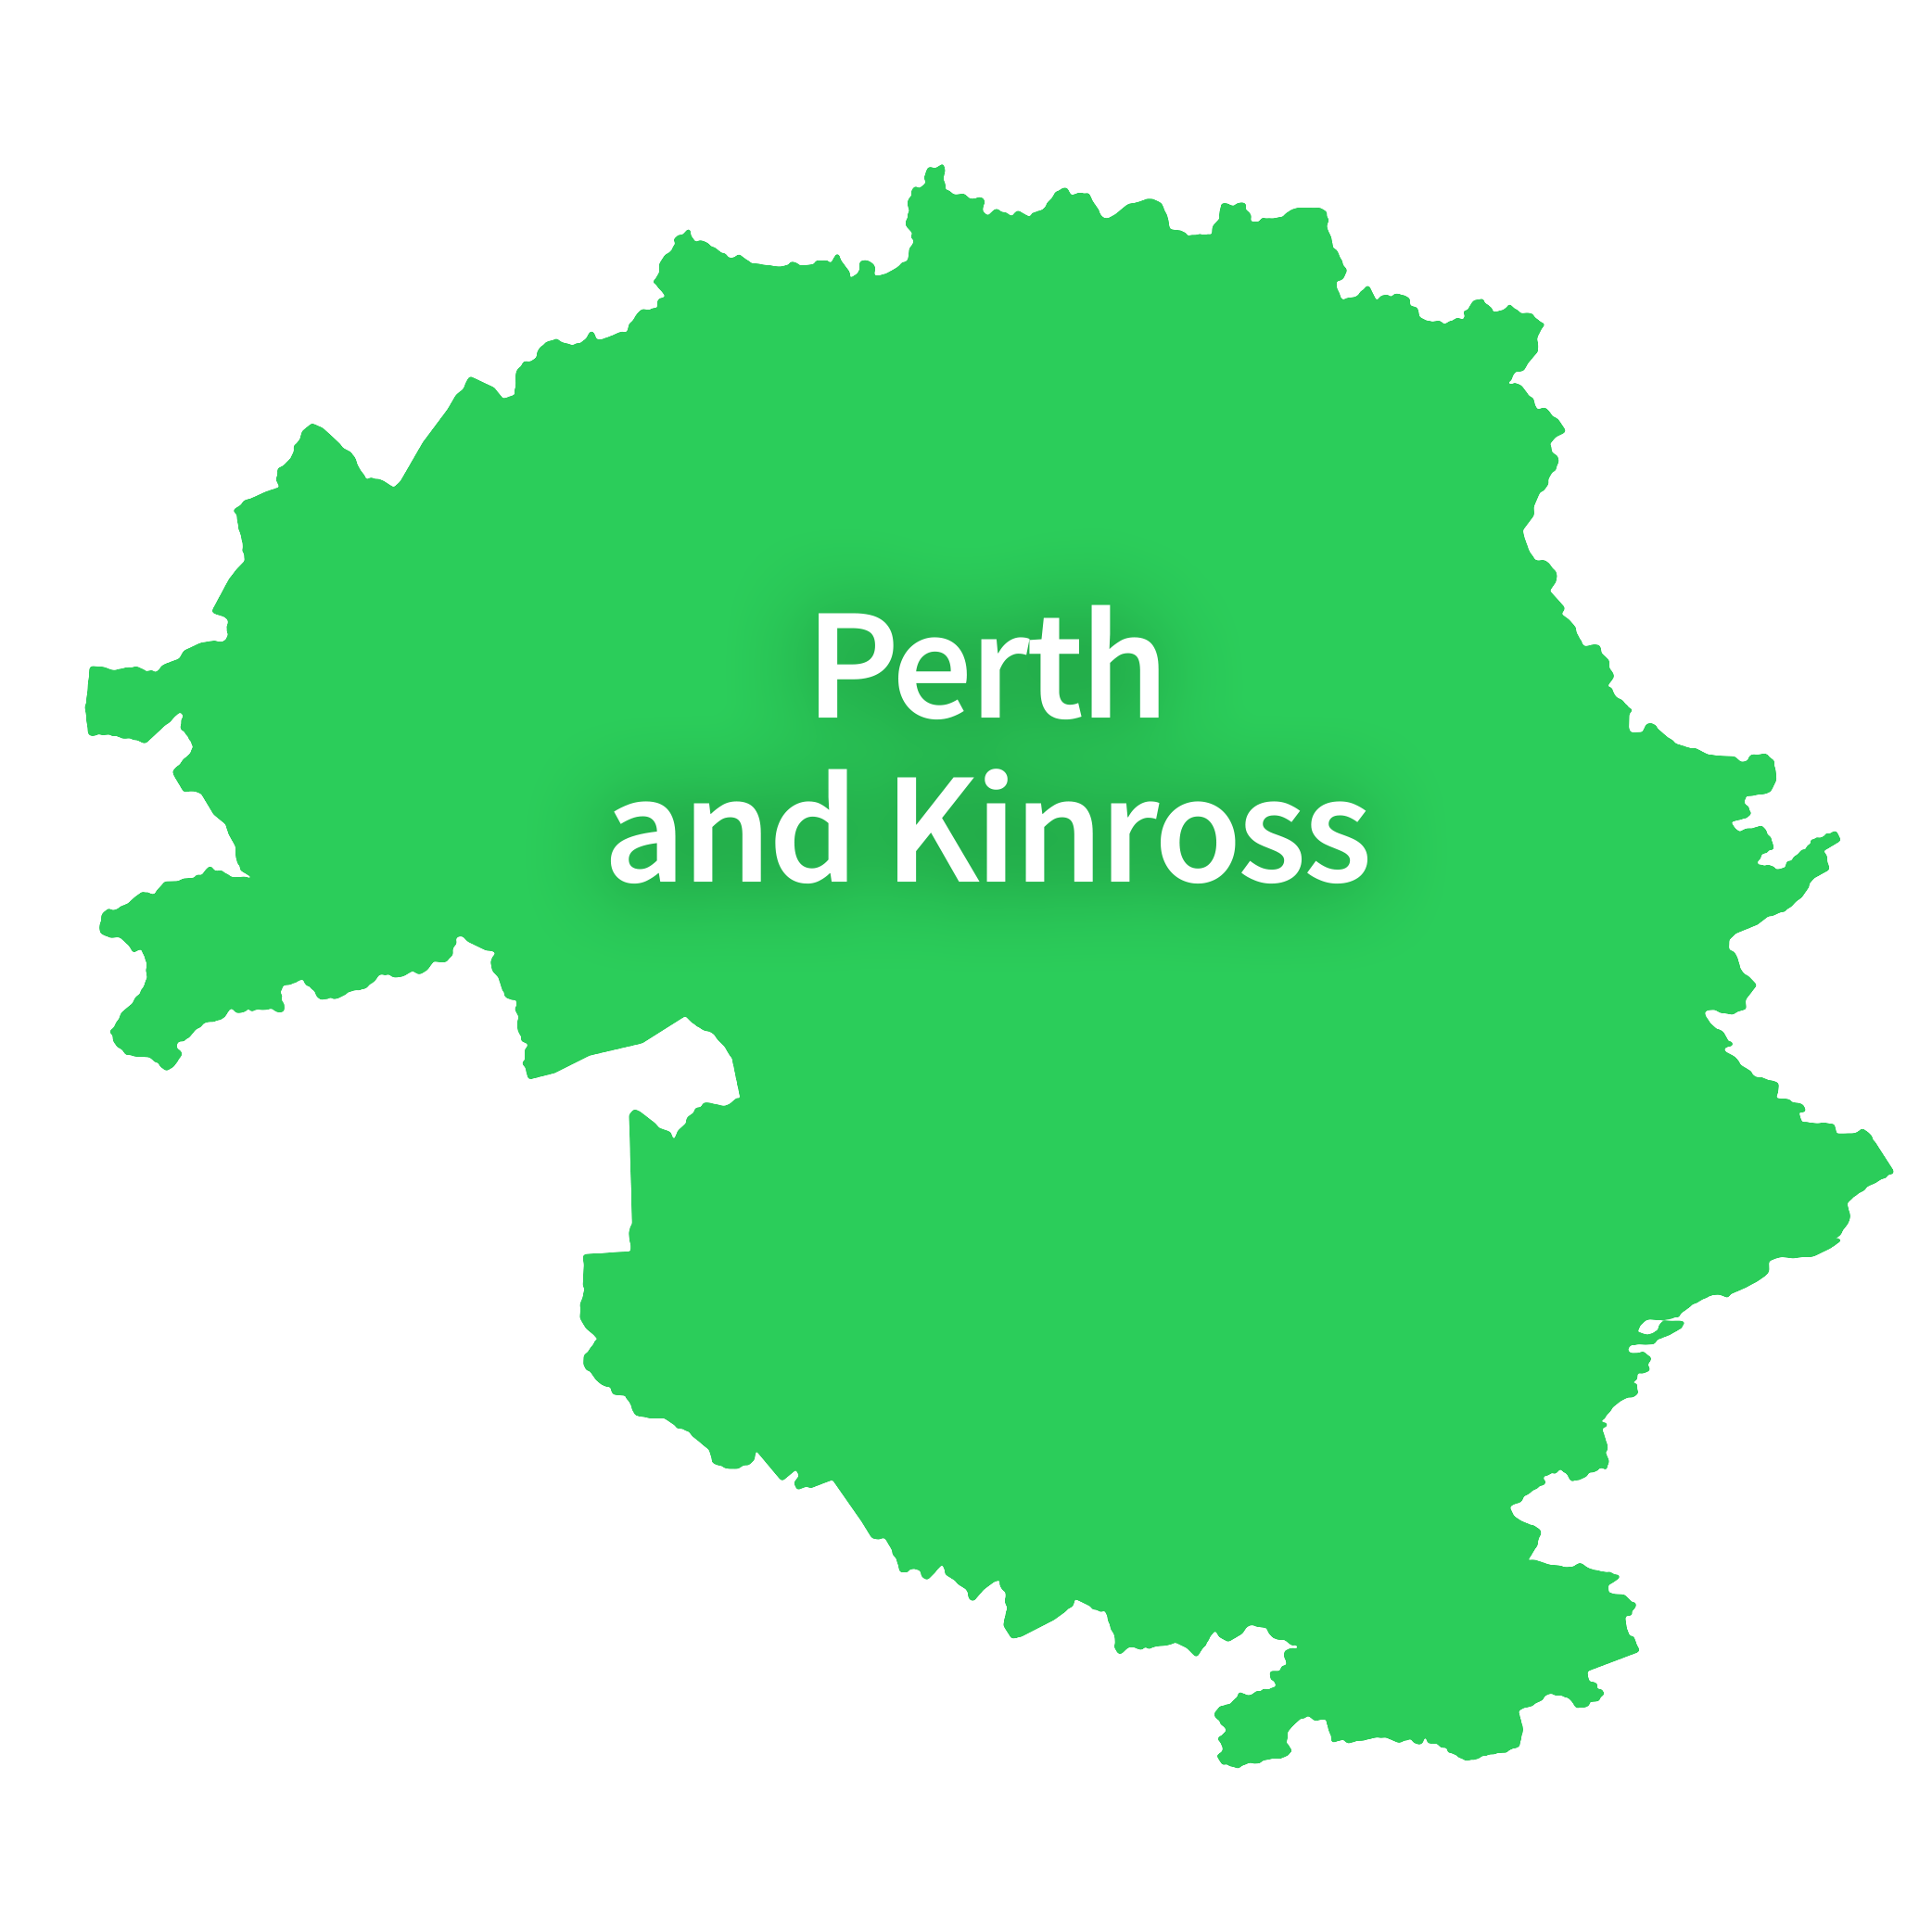 Map of Perth and Kinross